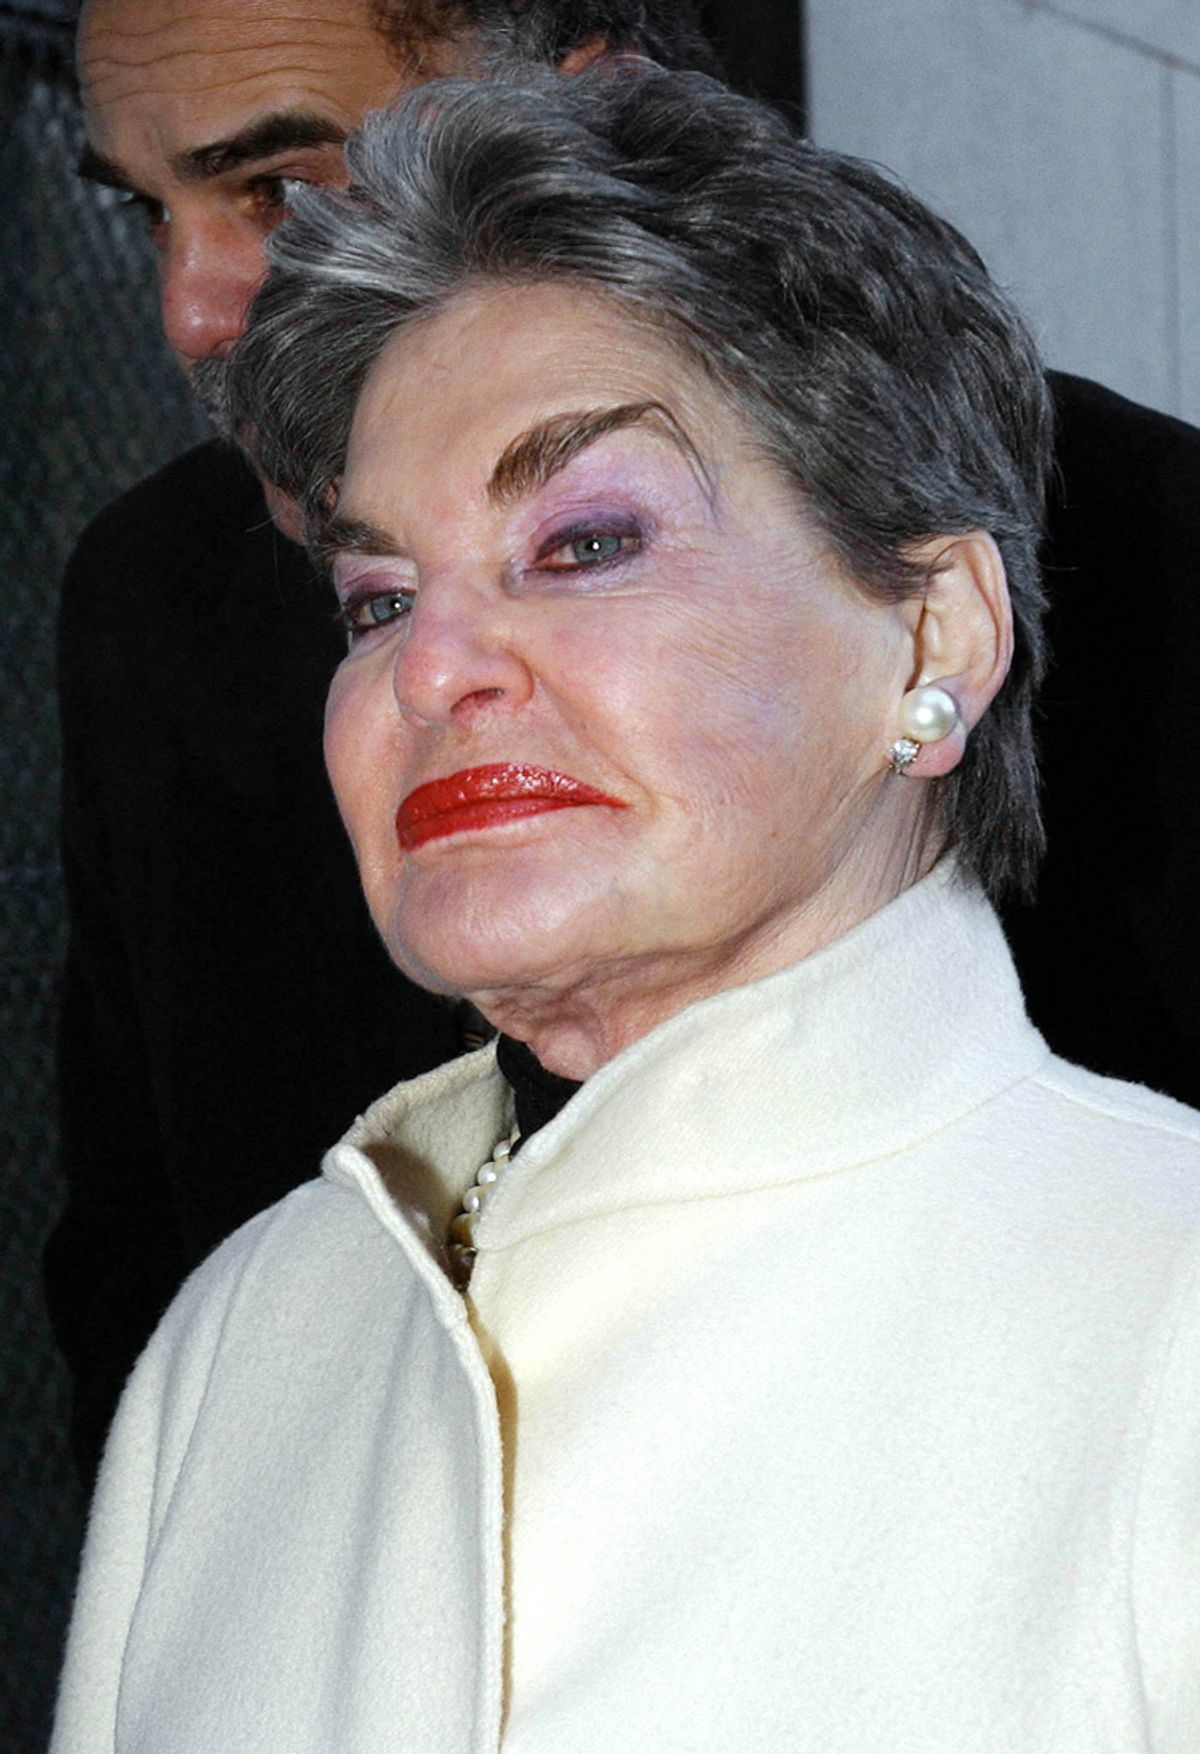 Real estate baroness Leona Helmsley appears for court to fight a former hotel manager's charges that she discriminates against homosexuals in New York on January 21, 2003. [Charles Bell, one of her former employees, is suing her alleging she fired him because of his sexual orientation.]    (© Chip East / Reuters)